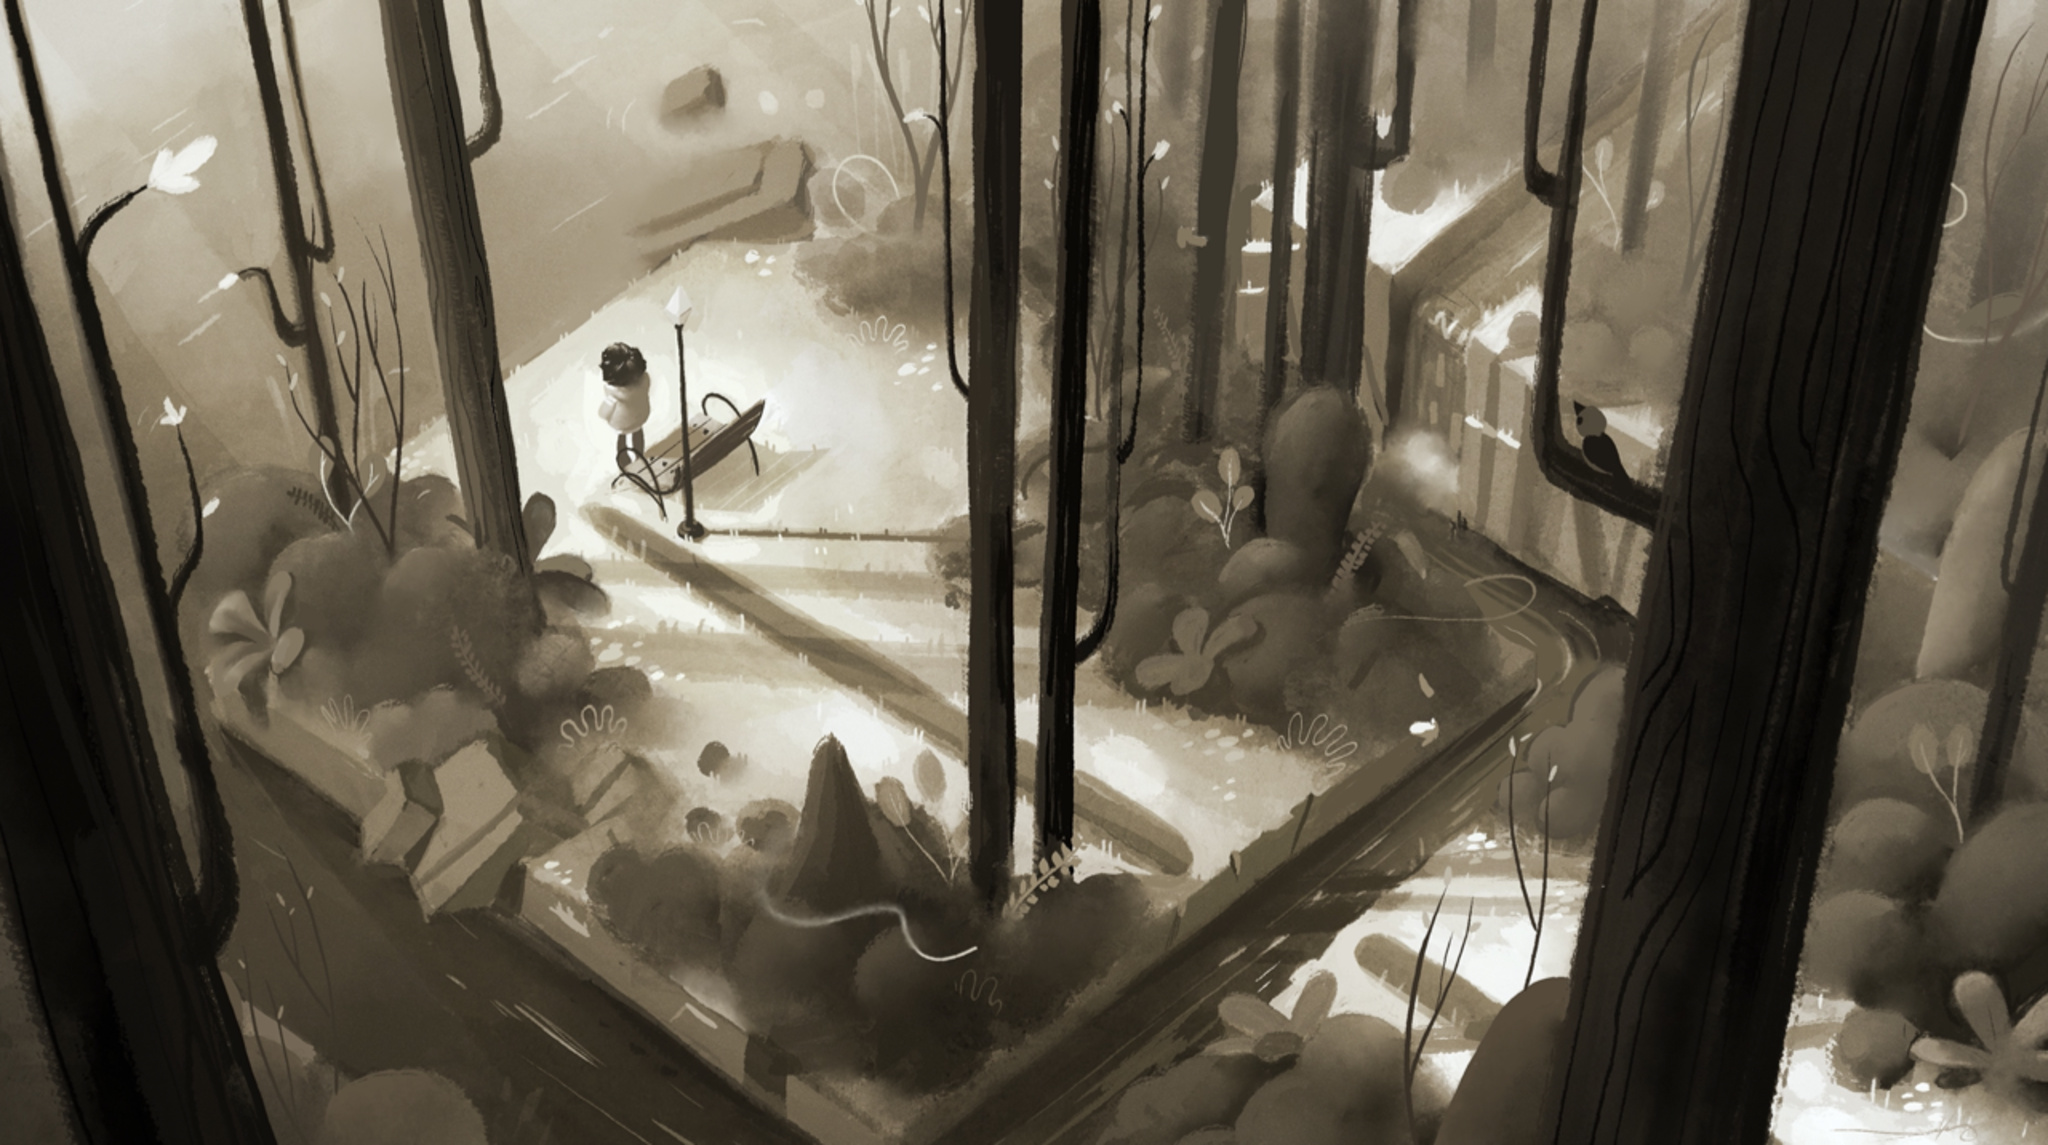 Where cards fall protagonist in black and white forest